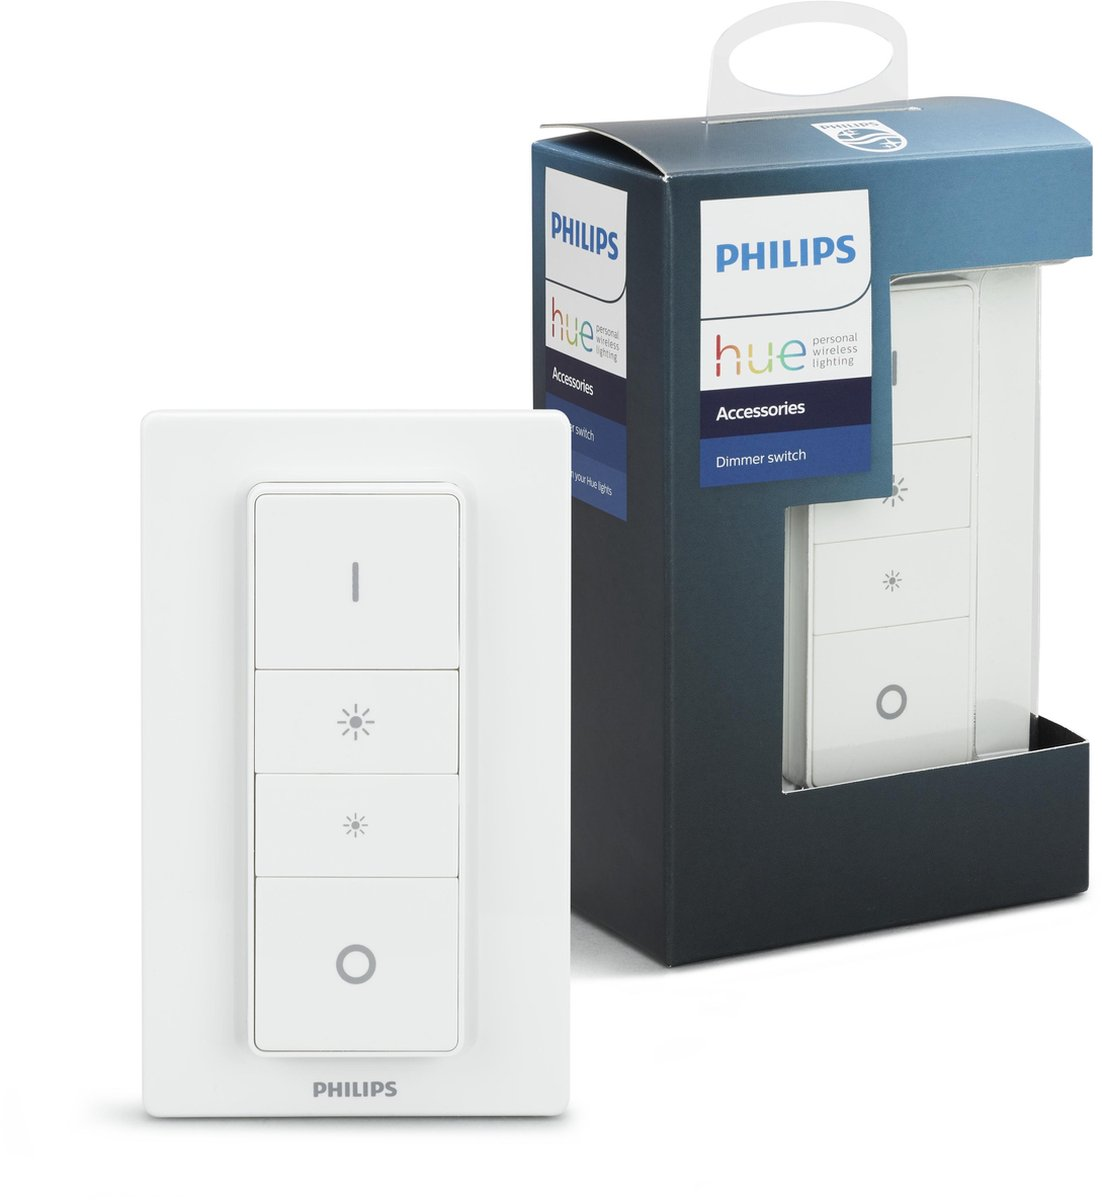 Philips Hue dimmer switch – draadloze schakelaar